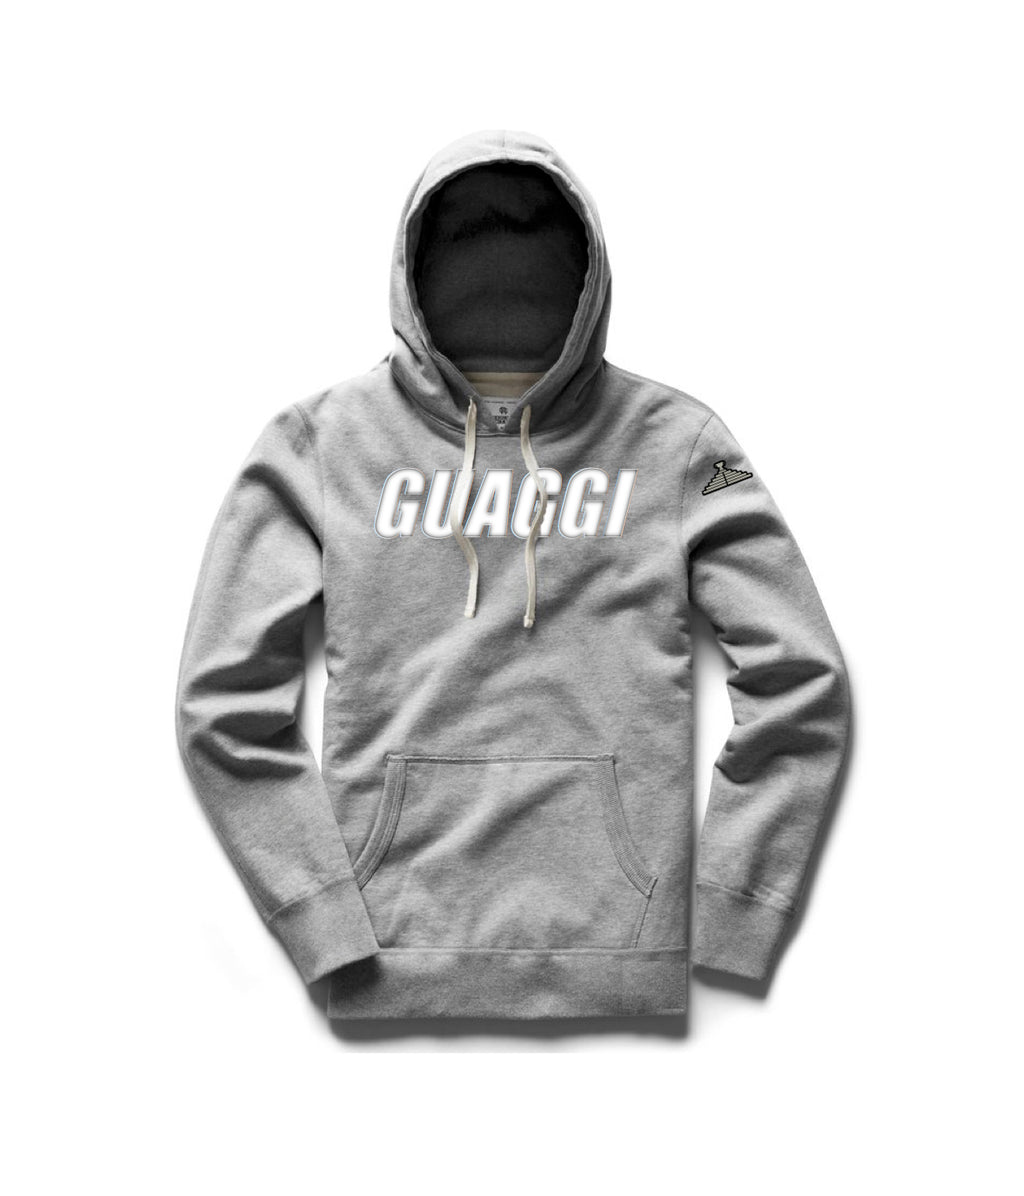 Motion Hoodie(Mens Only) - Grey (Choose Logo Color)